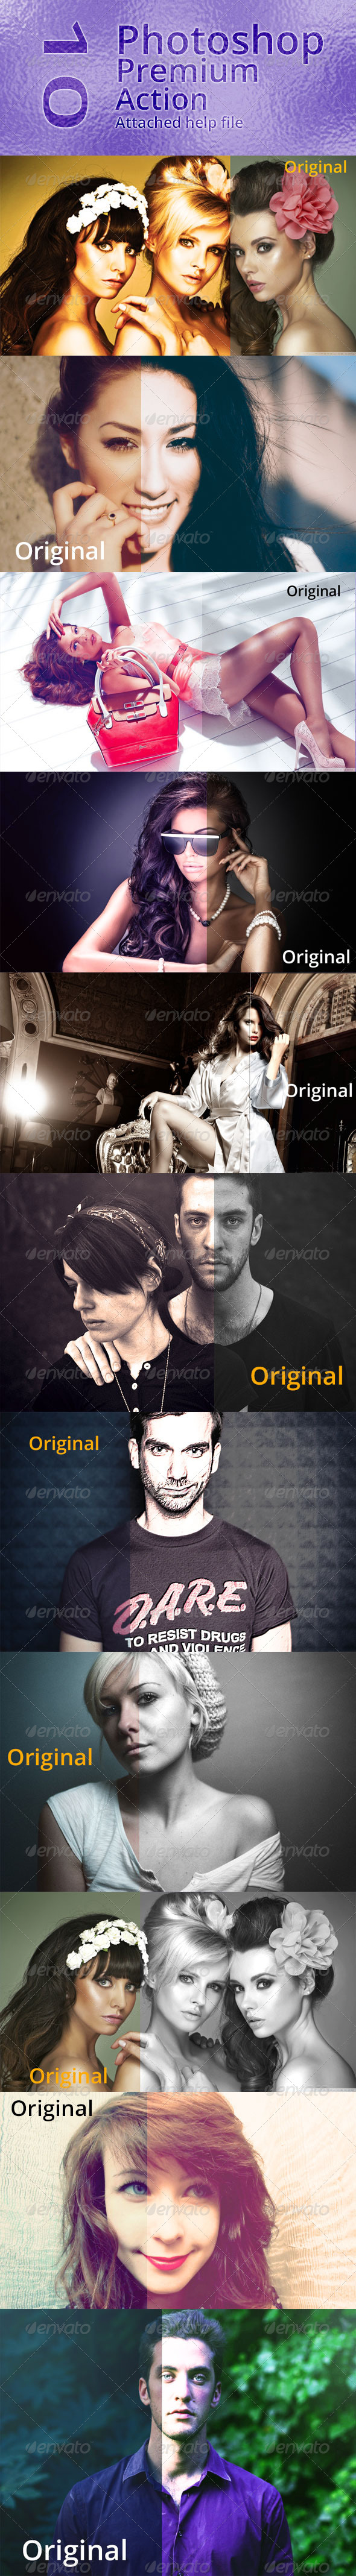 GraphicRiver 10 Photoshop Premium Actions 7579474